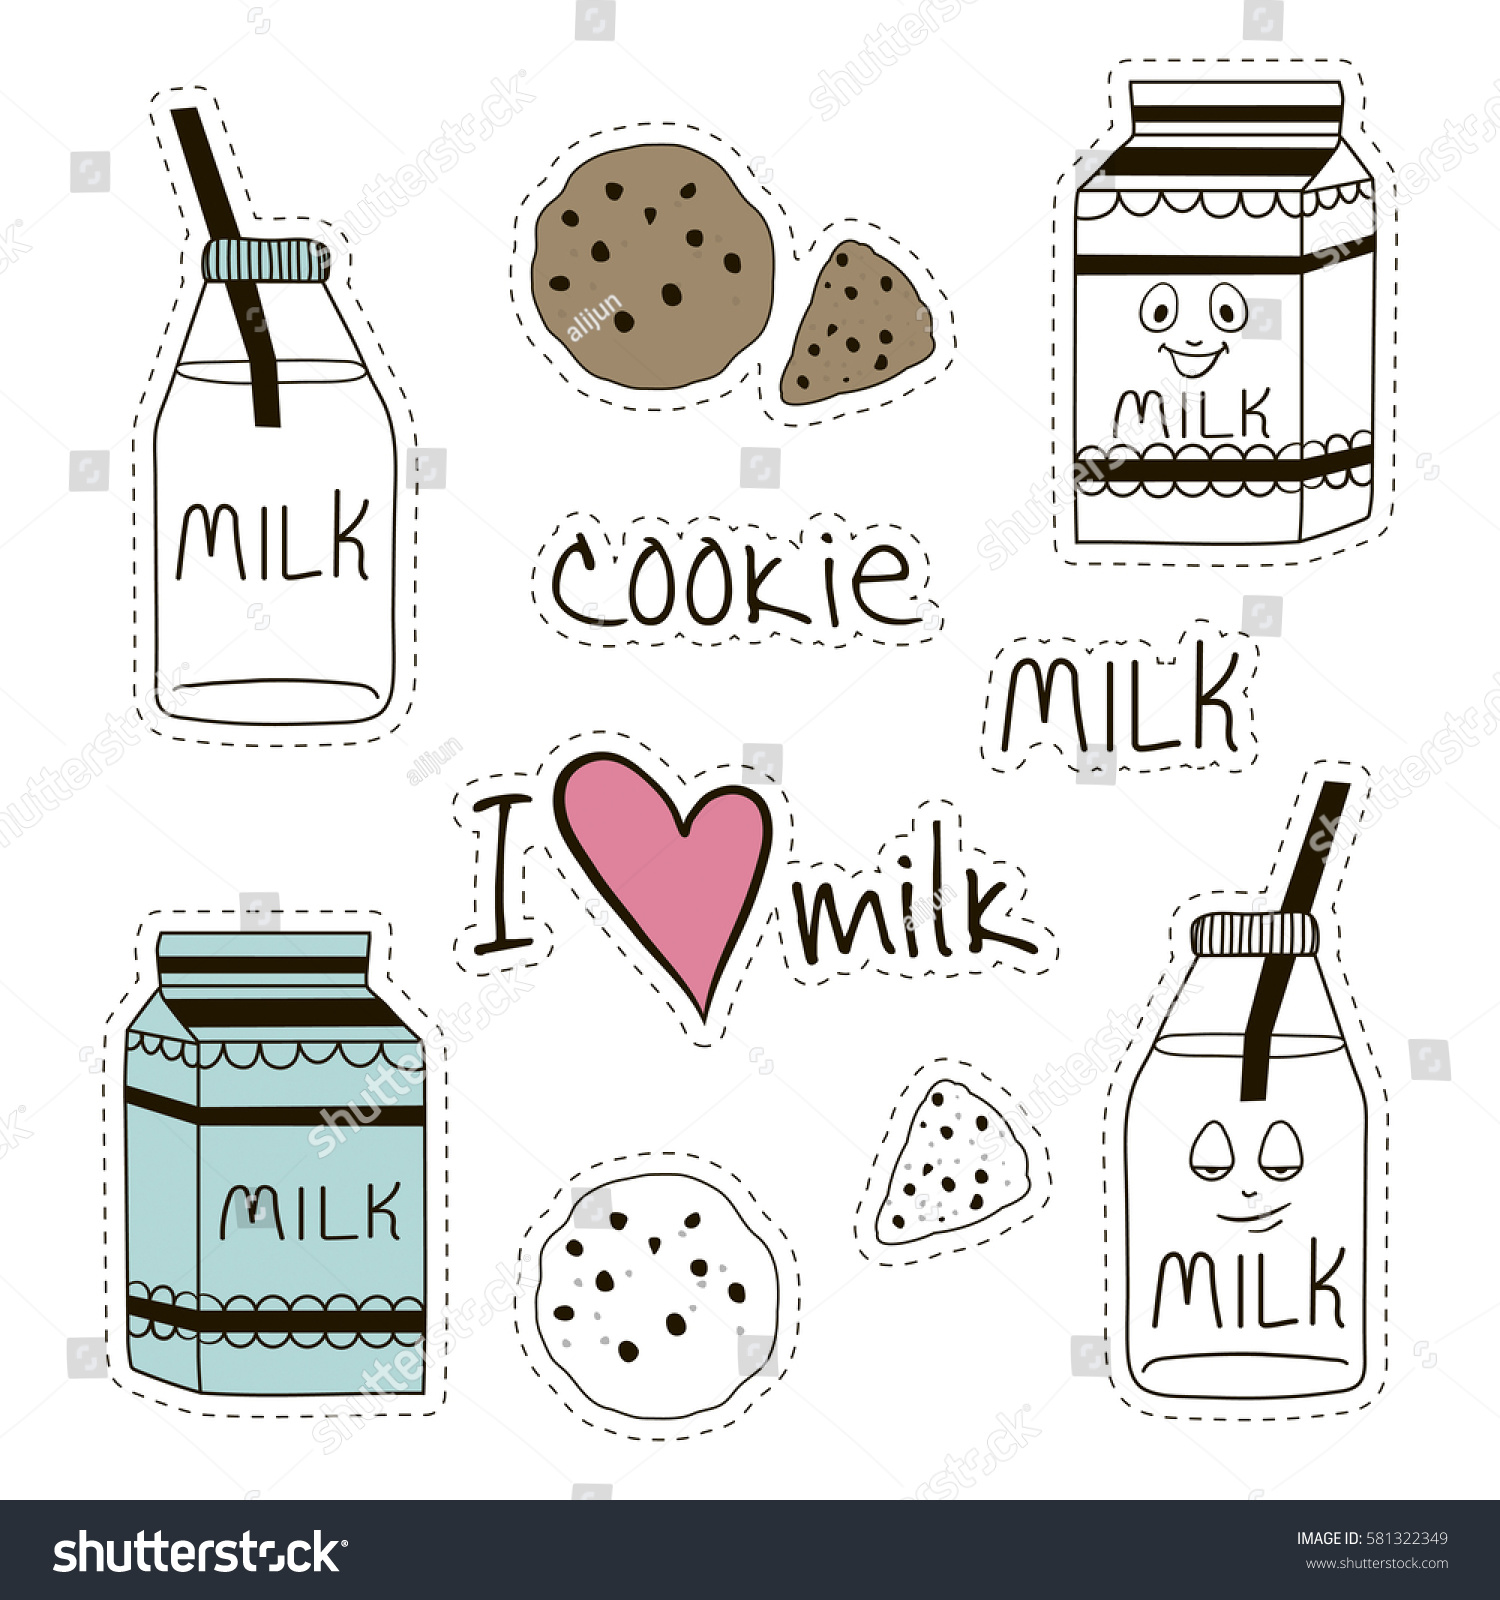 hight resolution of fresh milk and cookies stickers clipart for dairy stores farms and more